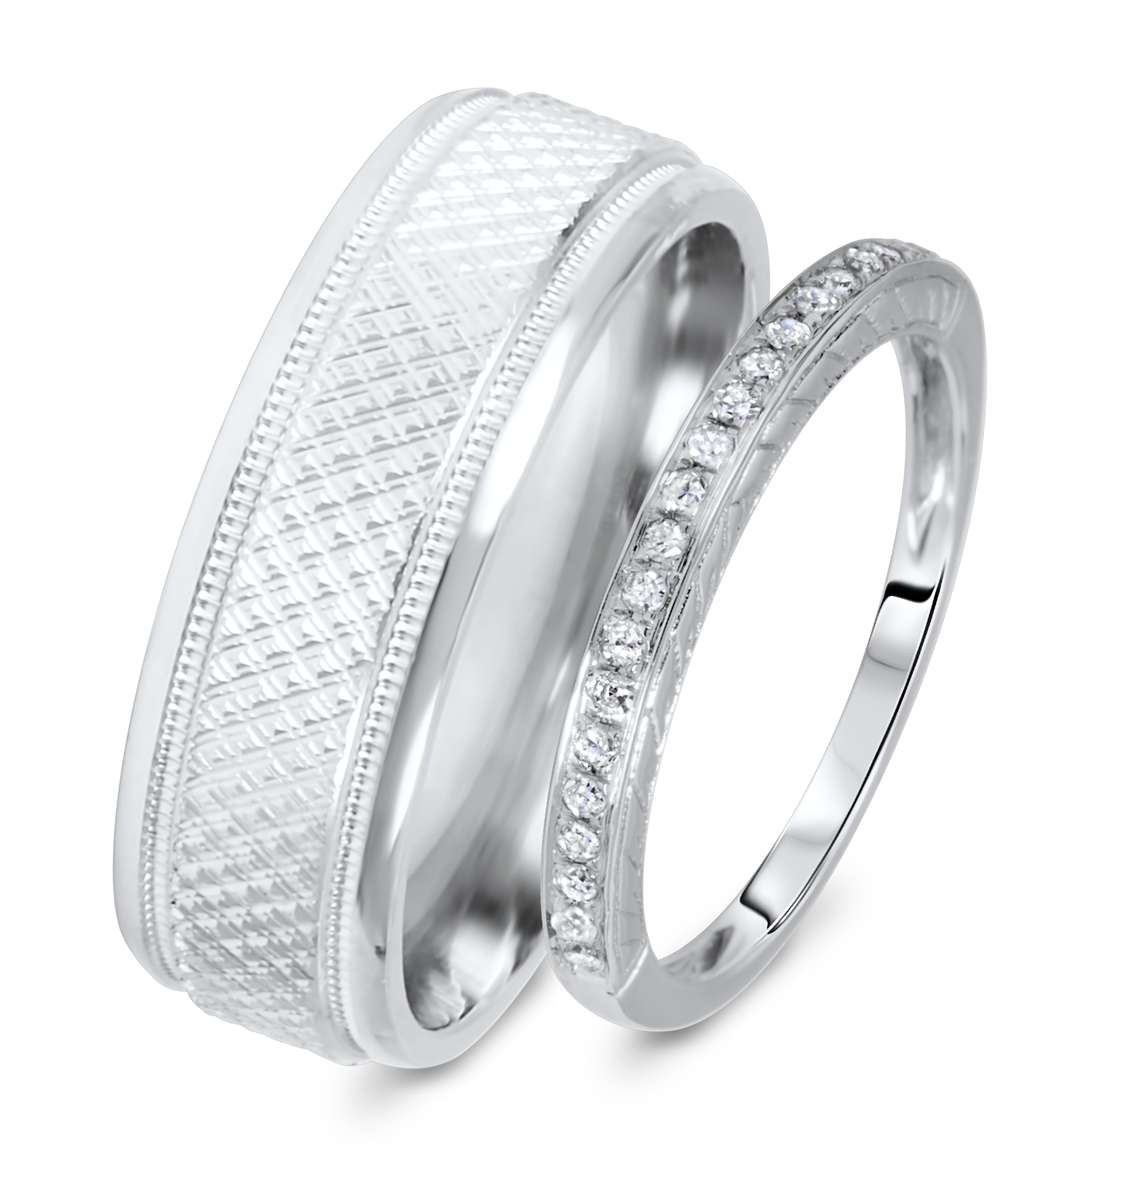 1 8 Carat TW Rounds Cut Diamond His And Hers Wedding Band Set 10K White Gold